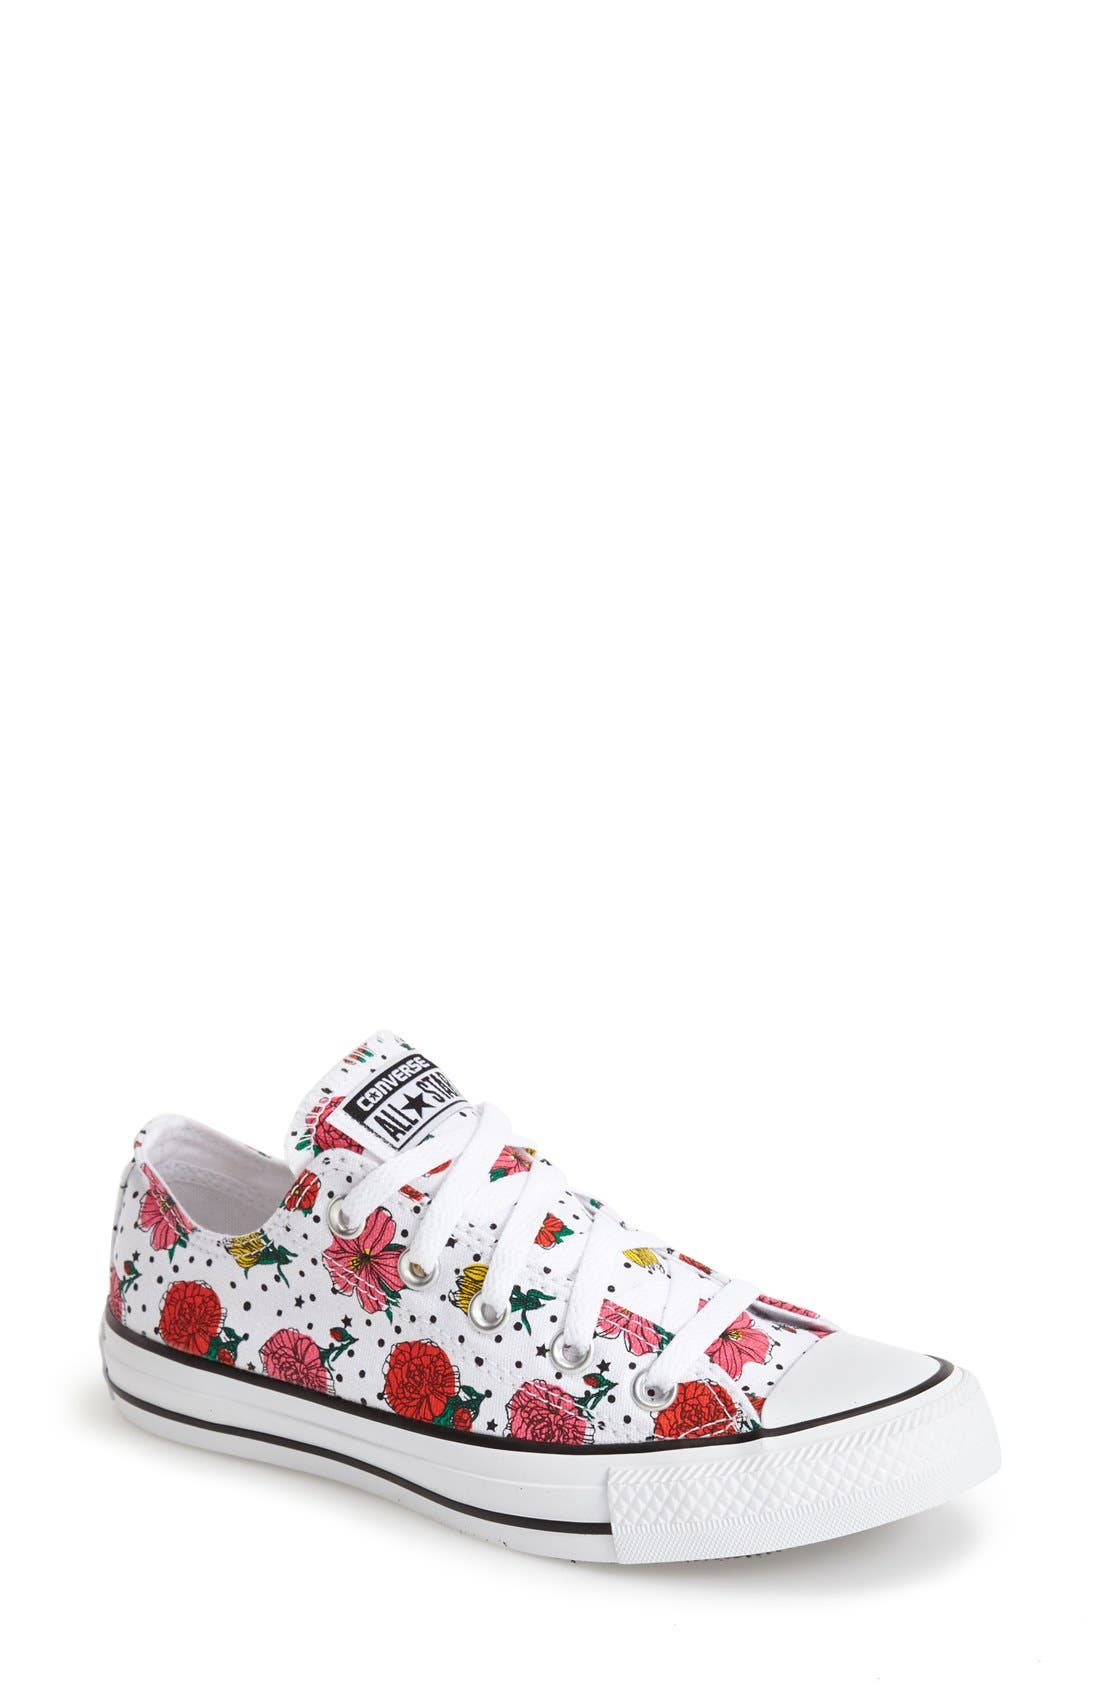 Alternate Image 1 Selected - Converse Chuck Taylor® All Star® Floral Polka Dot Low Top Sneaker (Women)